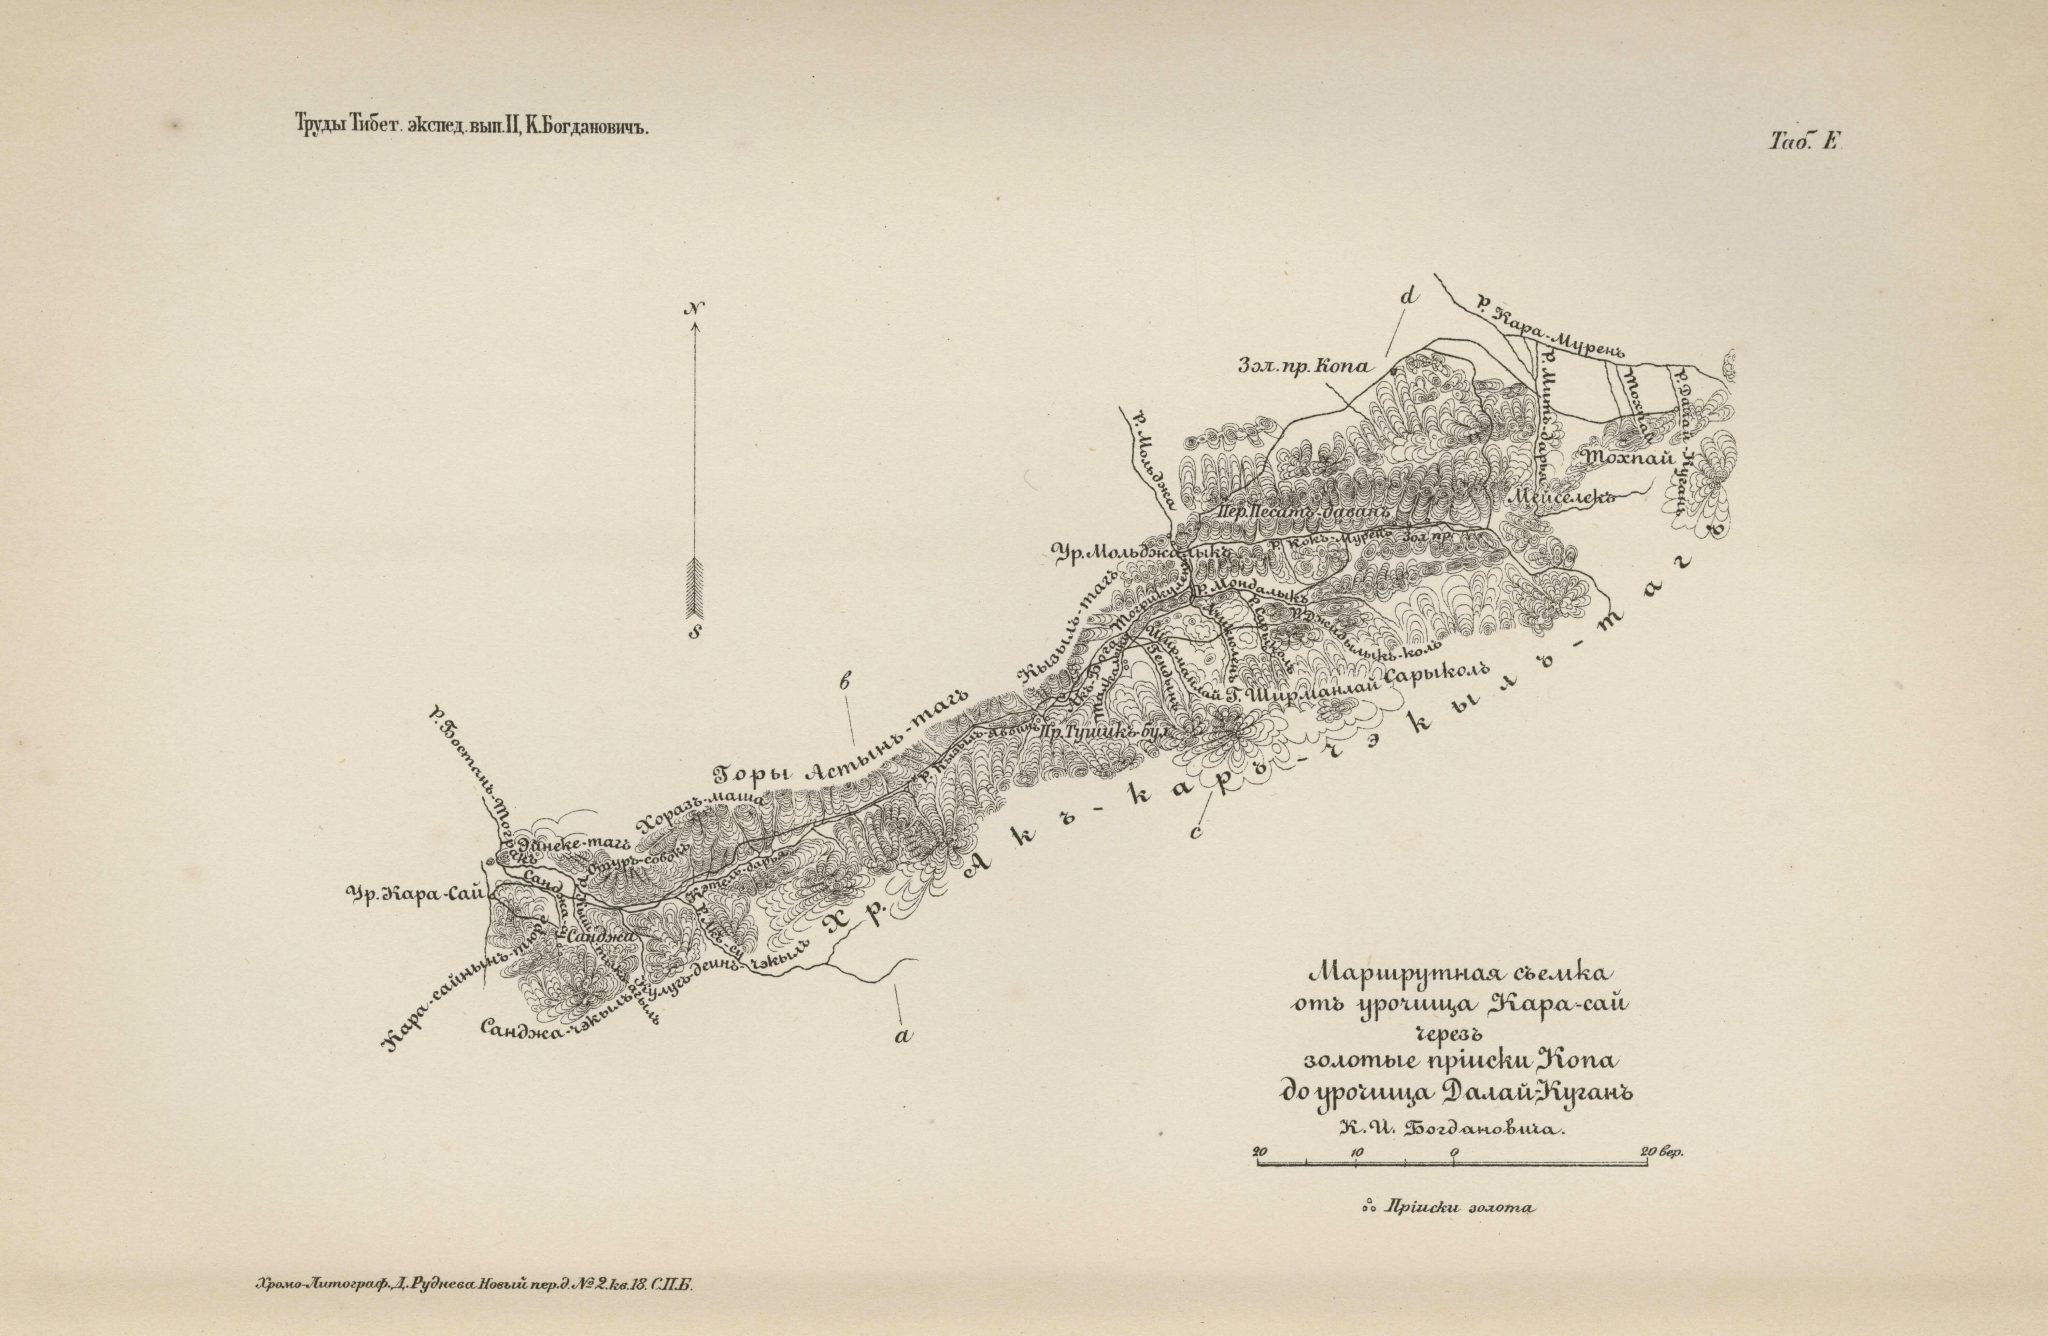 Route survey of Karasai, the Kopa gold mines and Dalai-Kurgan 1892